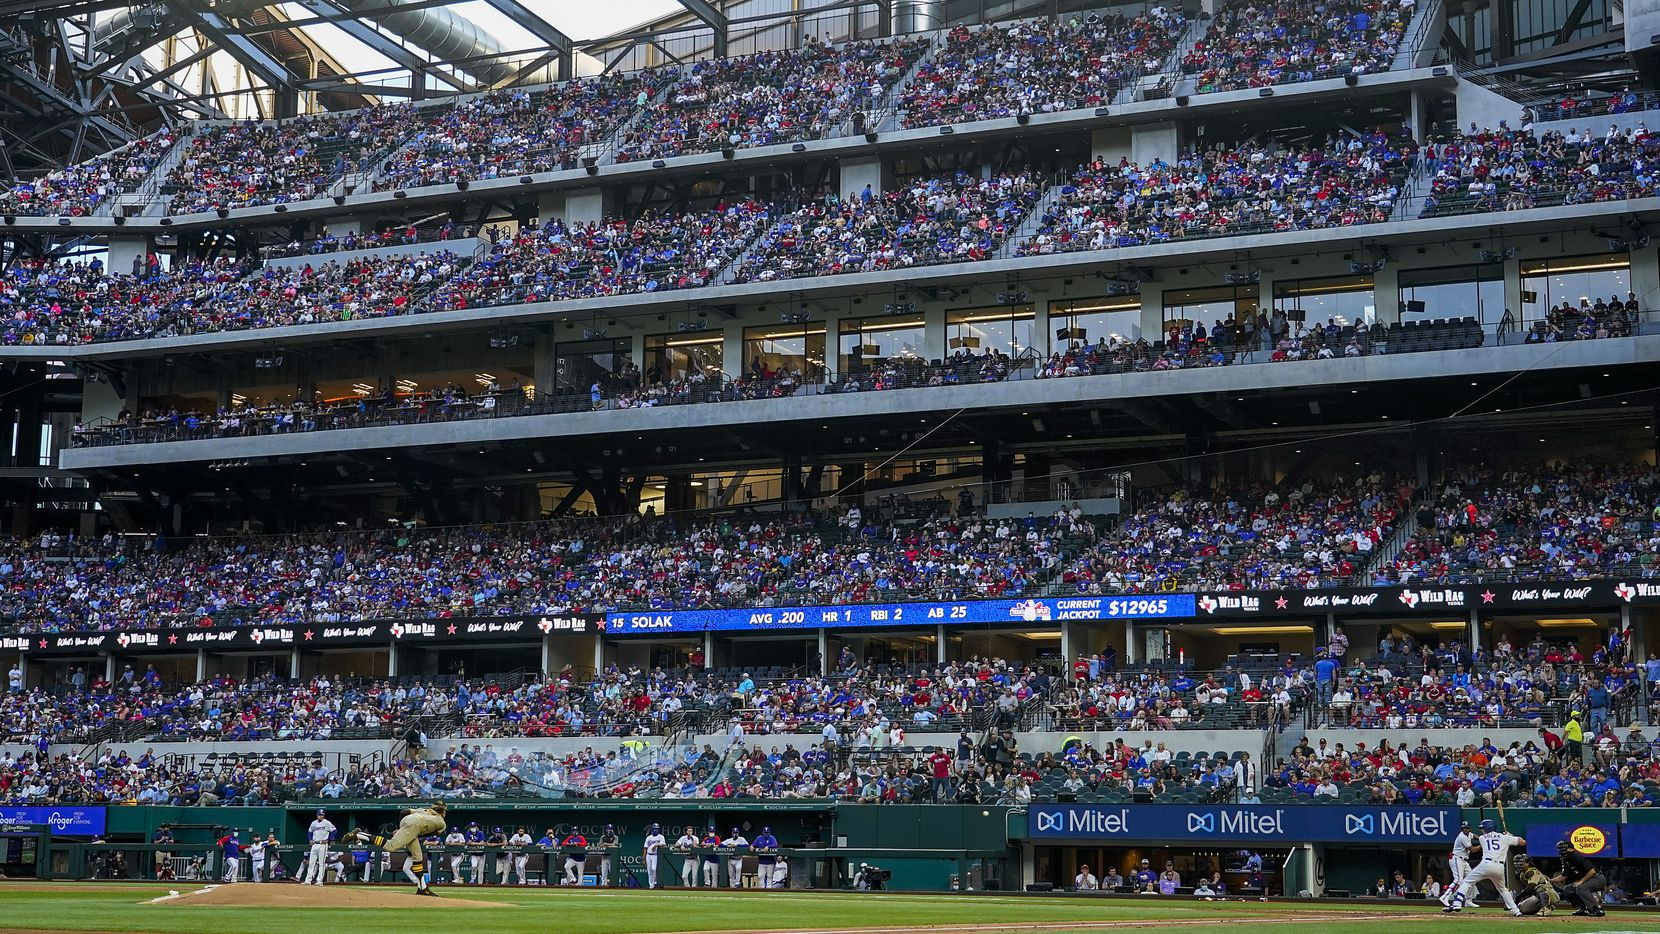 San Diego Padres starting pitcher Chris Paddack delivers to Texas Rangers second baseman Nick Solak during the second inning in front of a crowd of 35,856 at Globe Life Field on Saturday, April 10, 2021.